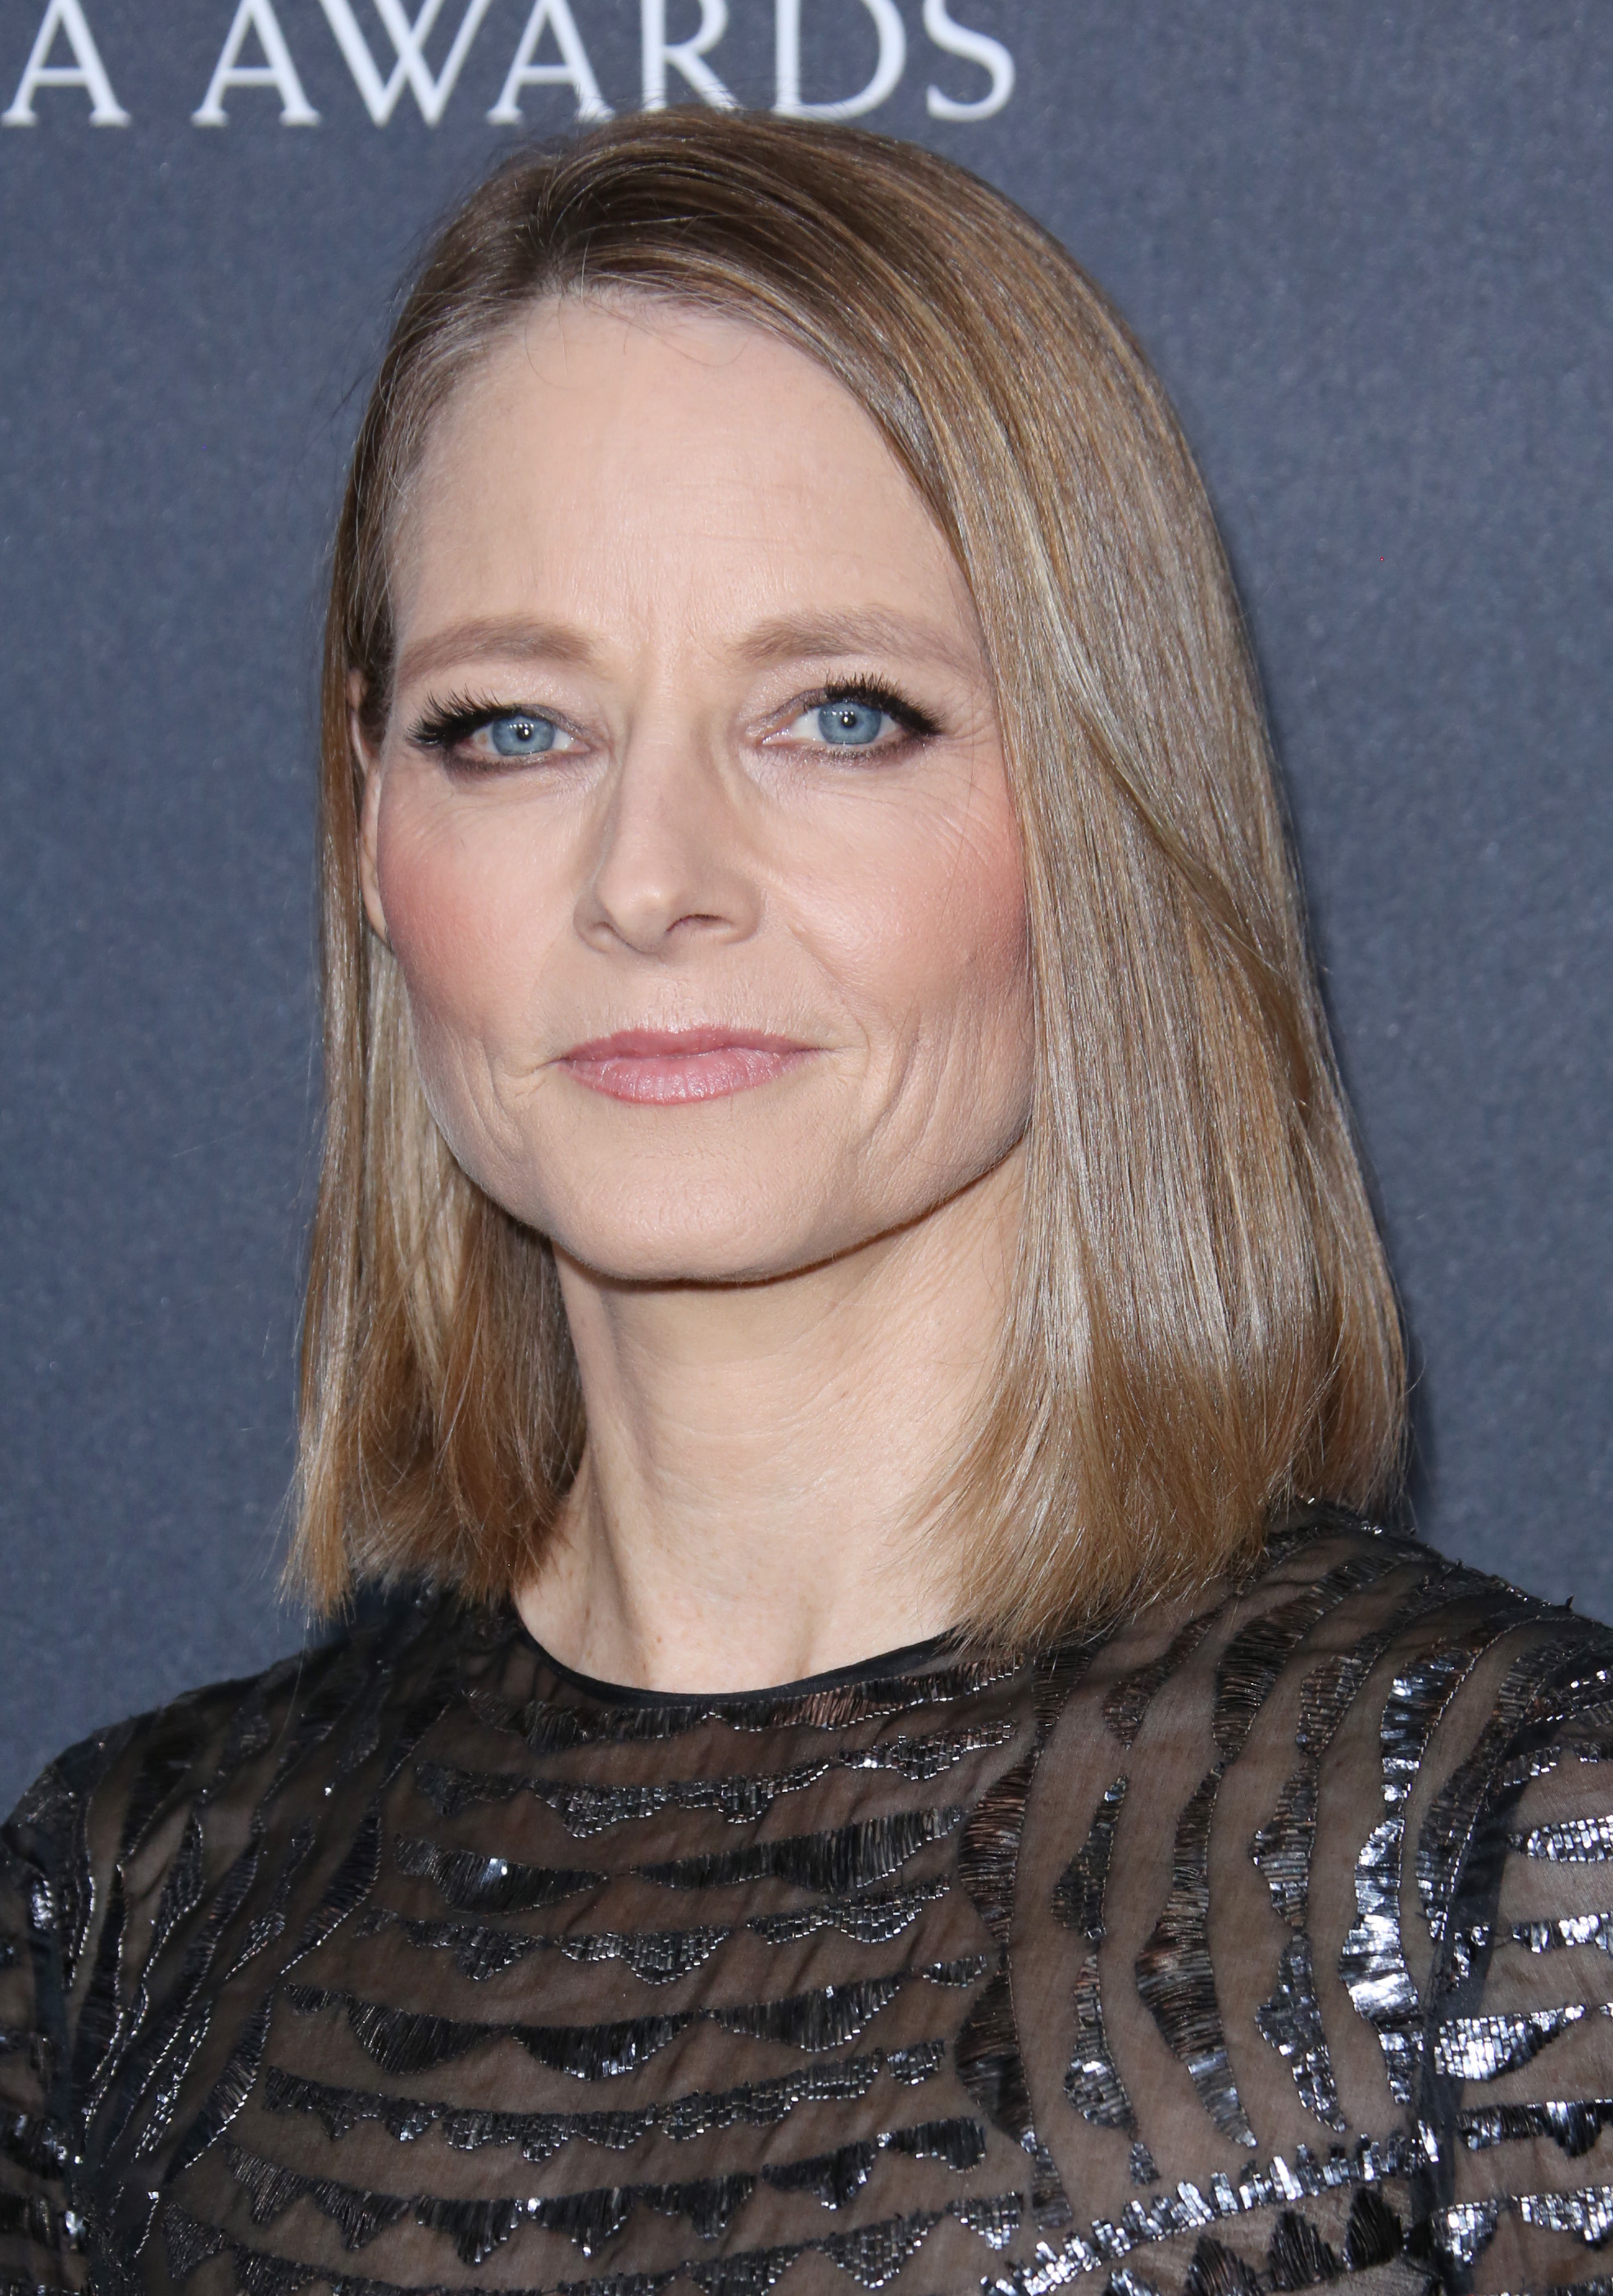 Jodie Foster at BAFTA Britannia Awards,